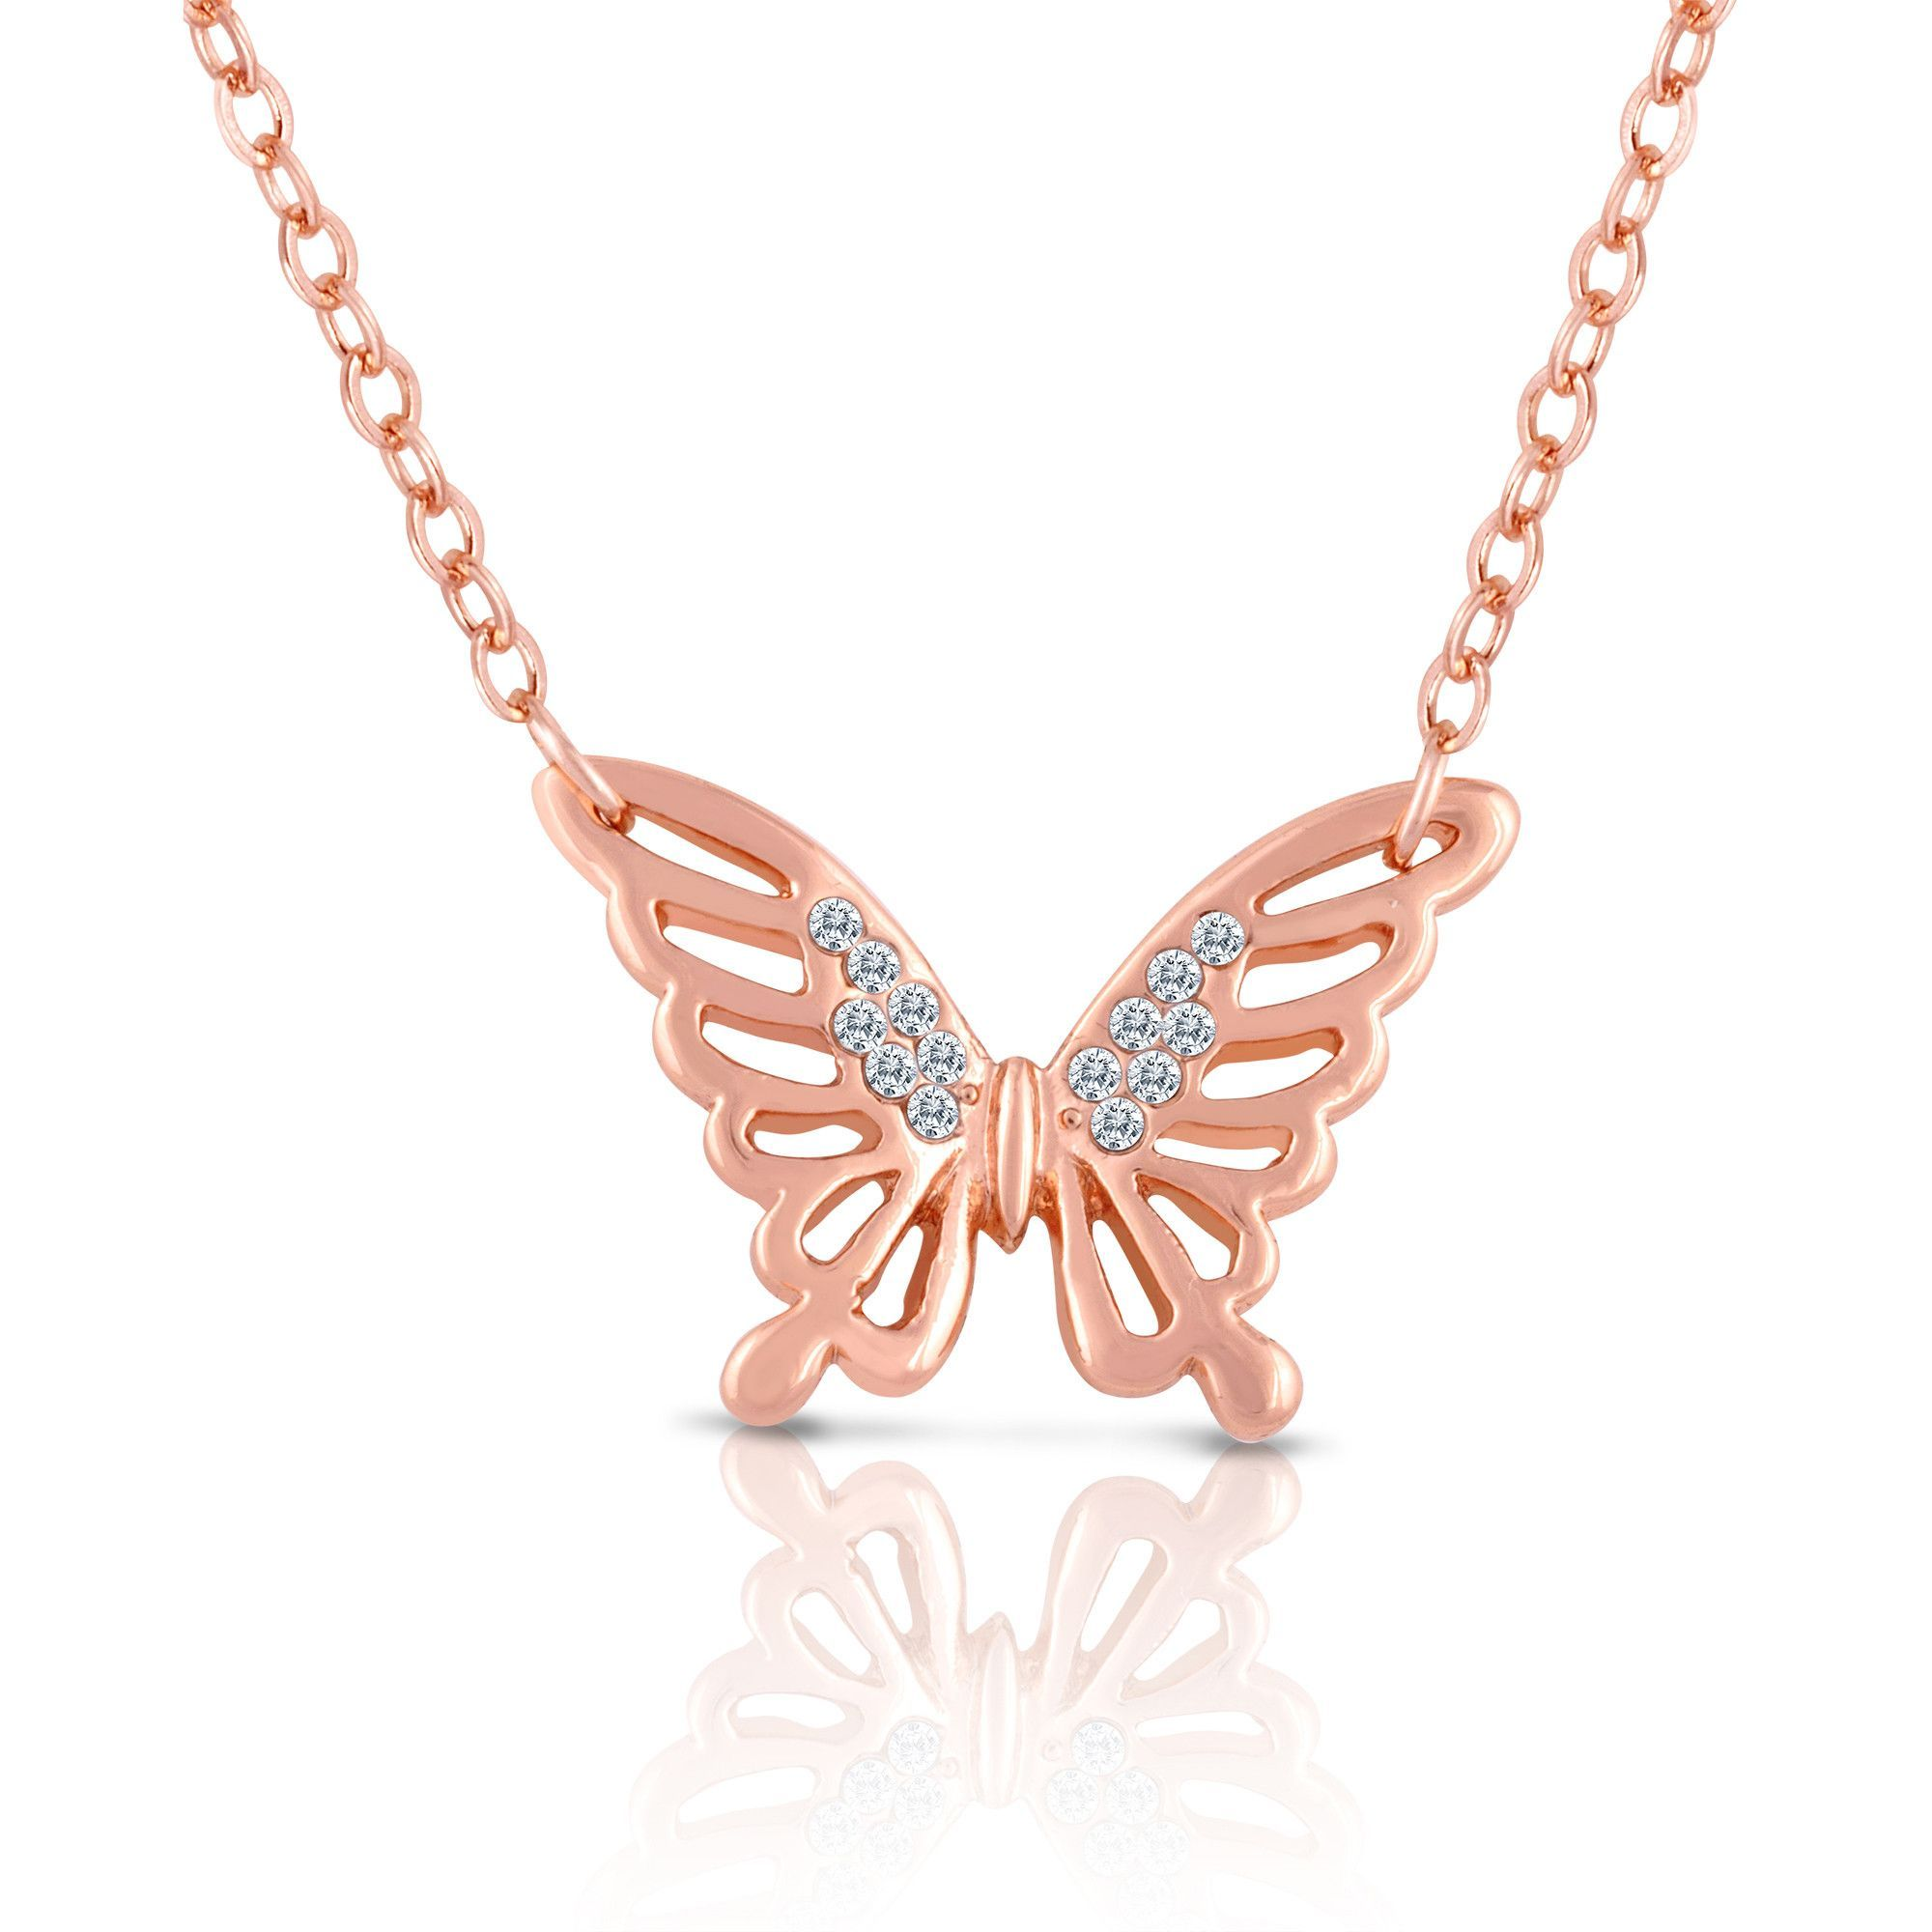 Rose Gold Butterfly Necklace with Crystals for Women Teens Girls